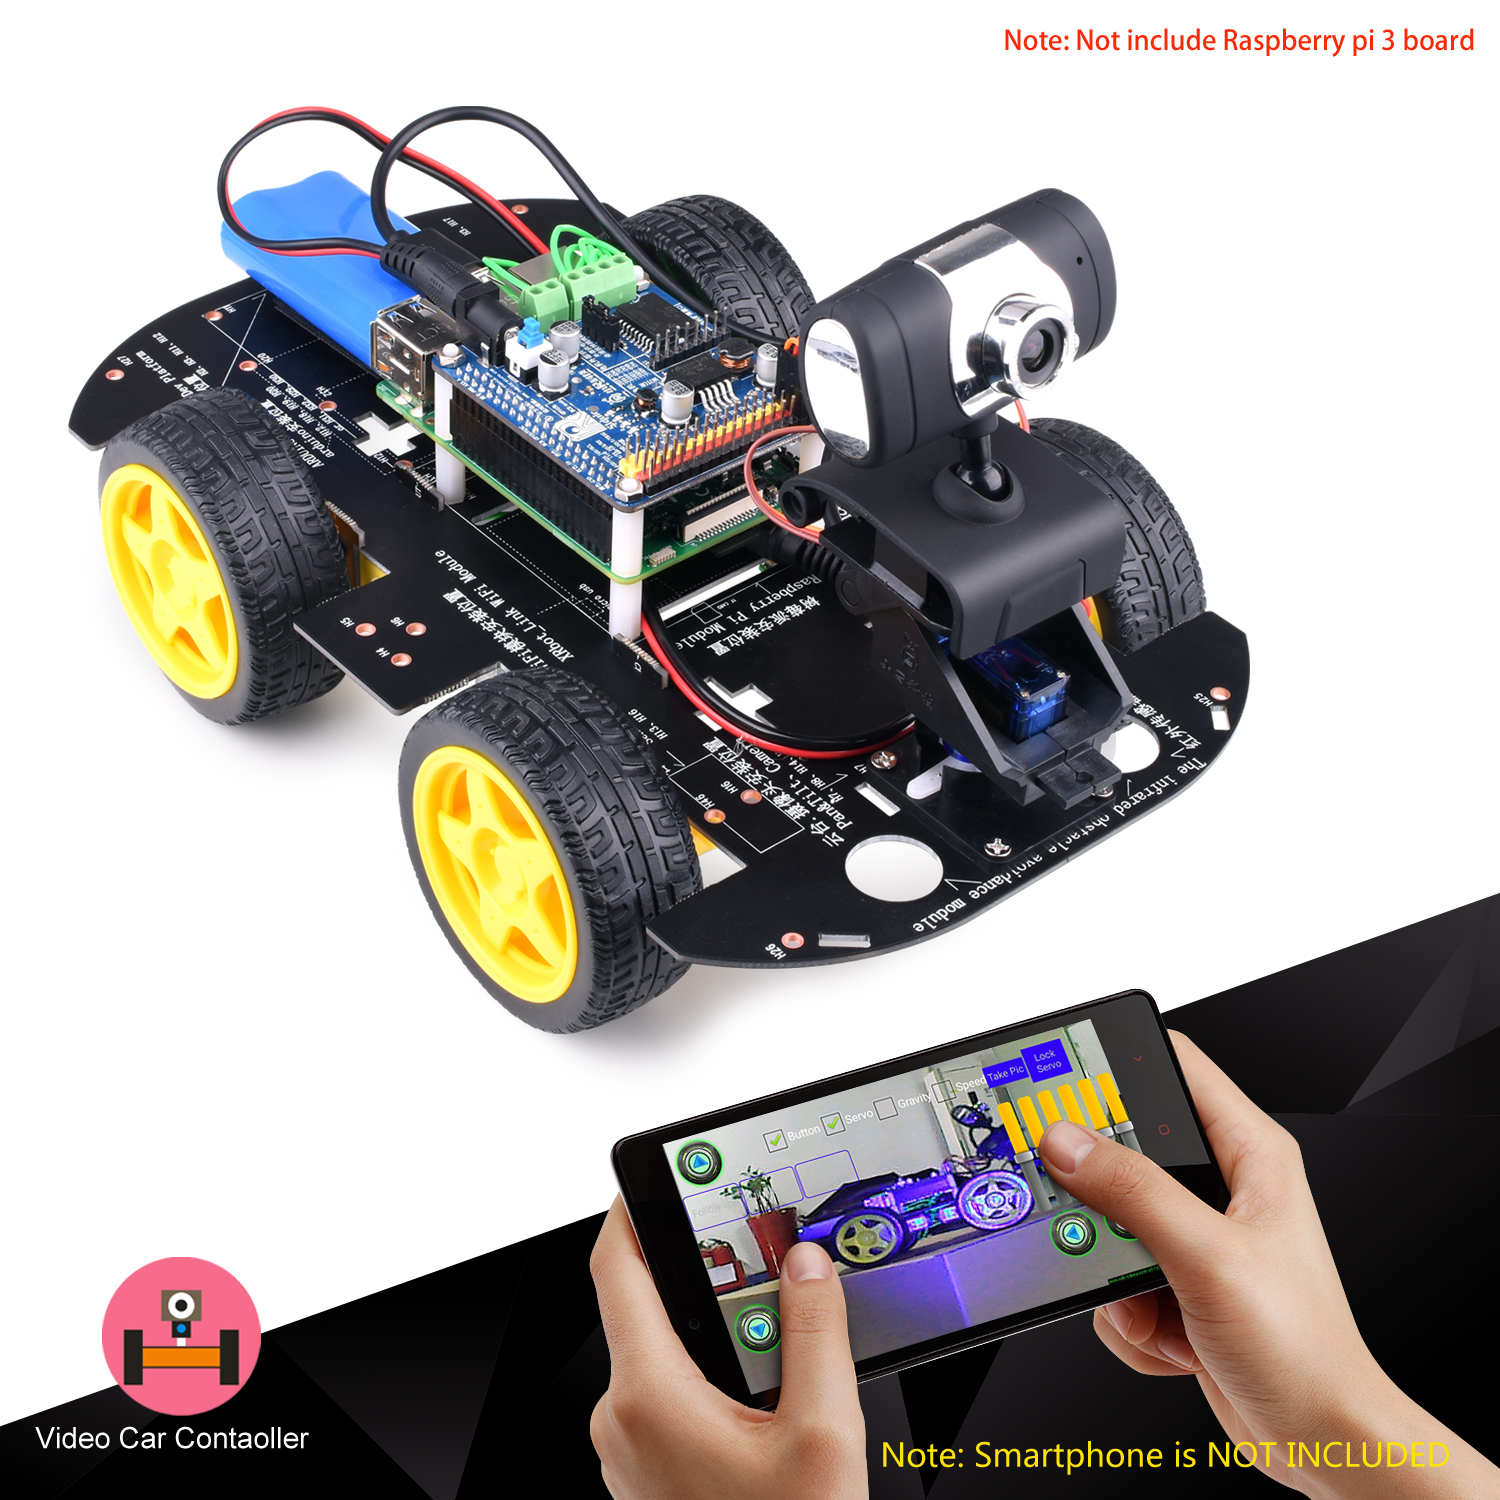 Kuman smart wireless wifi rc 4wd video robot car for raspberry pi kuman smart wireless wifi rc 4wd video robot car for raspberry pi 3 8g sd pc android ios control sm9robot kit sciox Choice Image